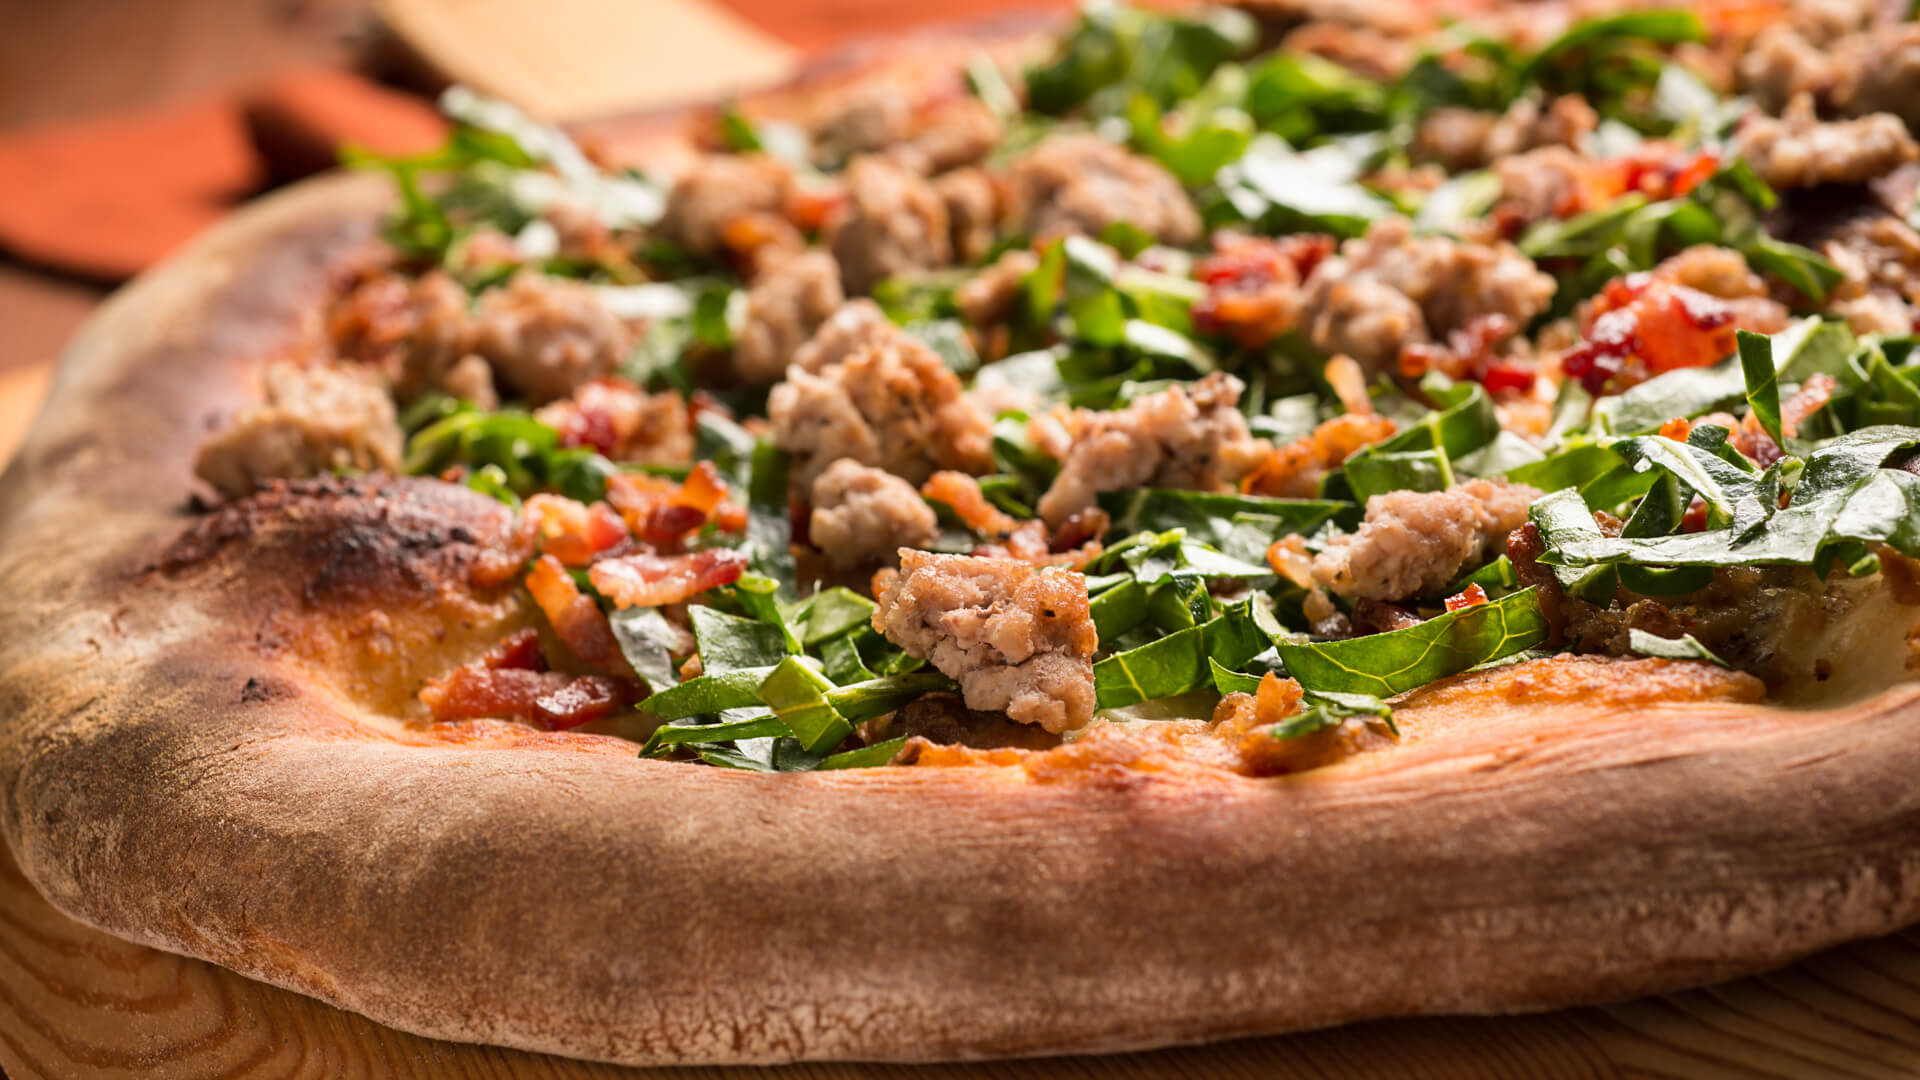 Gourmet pizza with sausage and spinach.